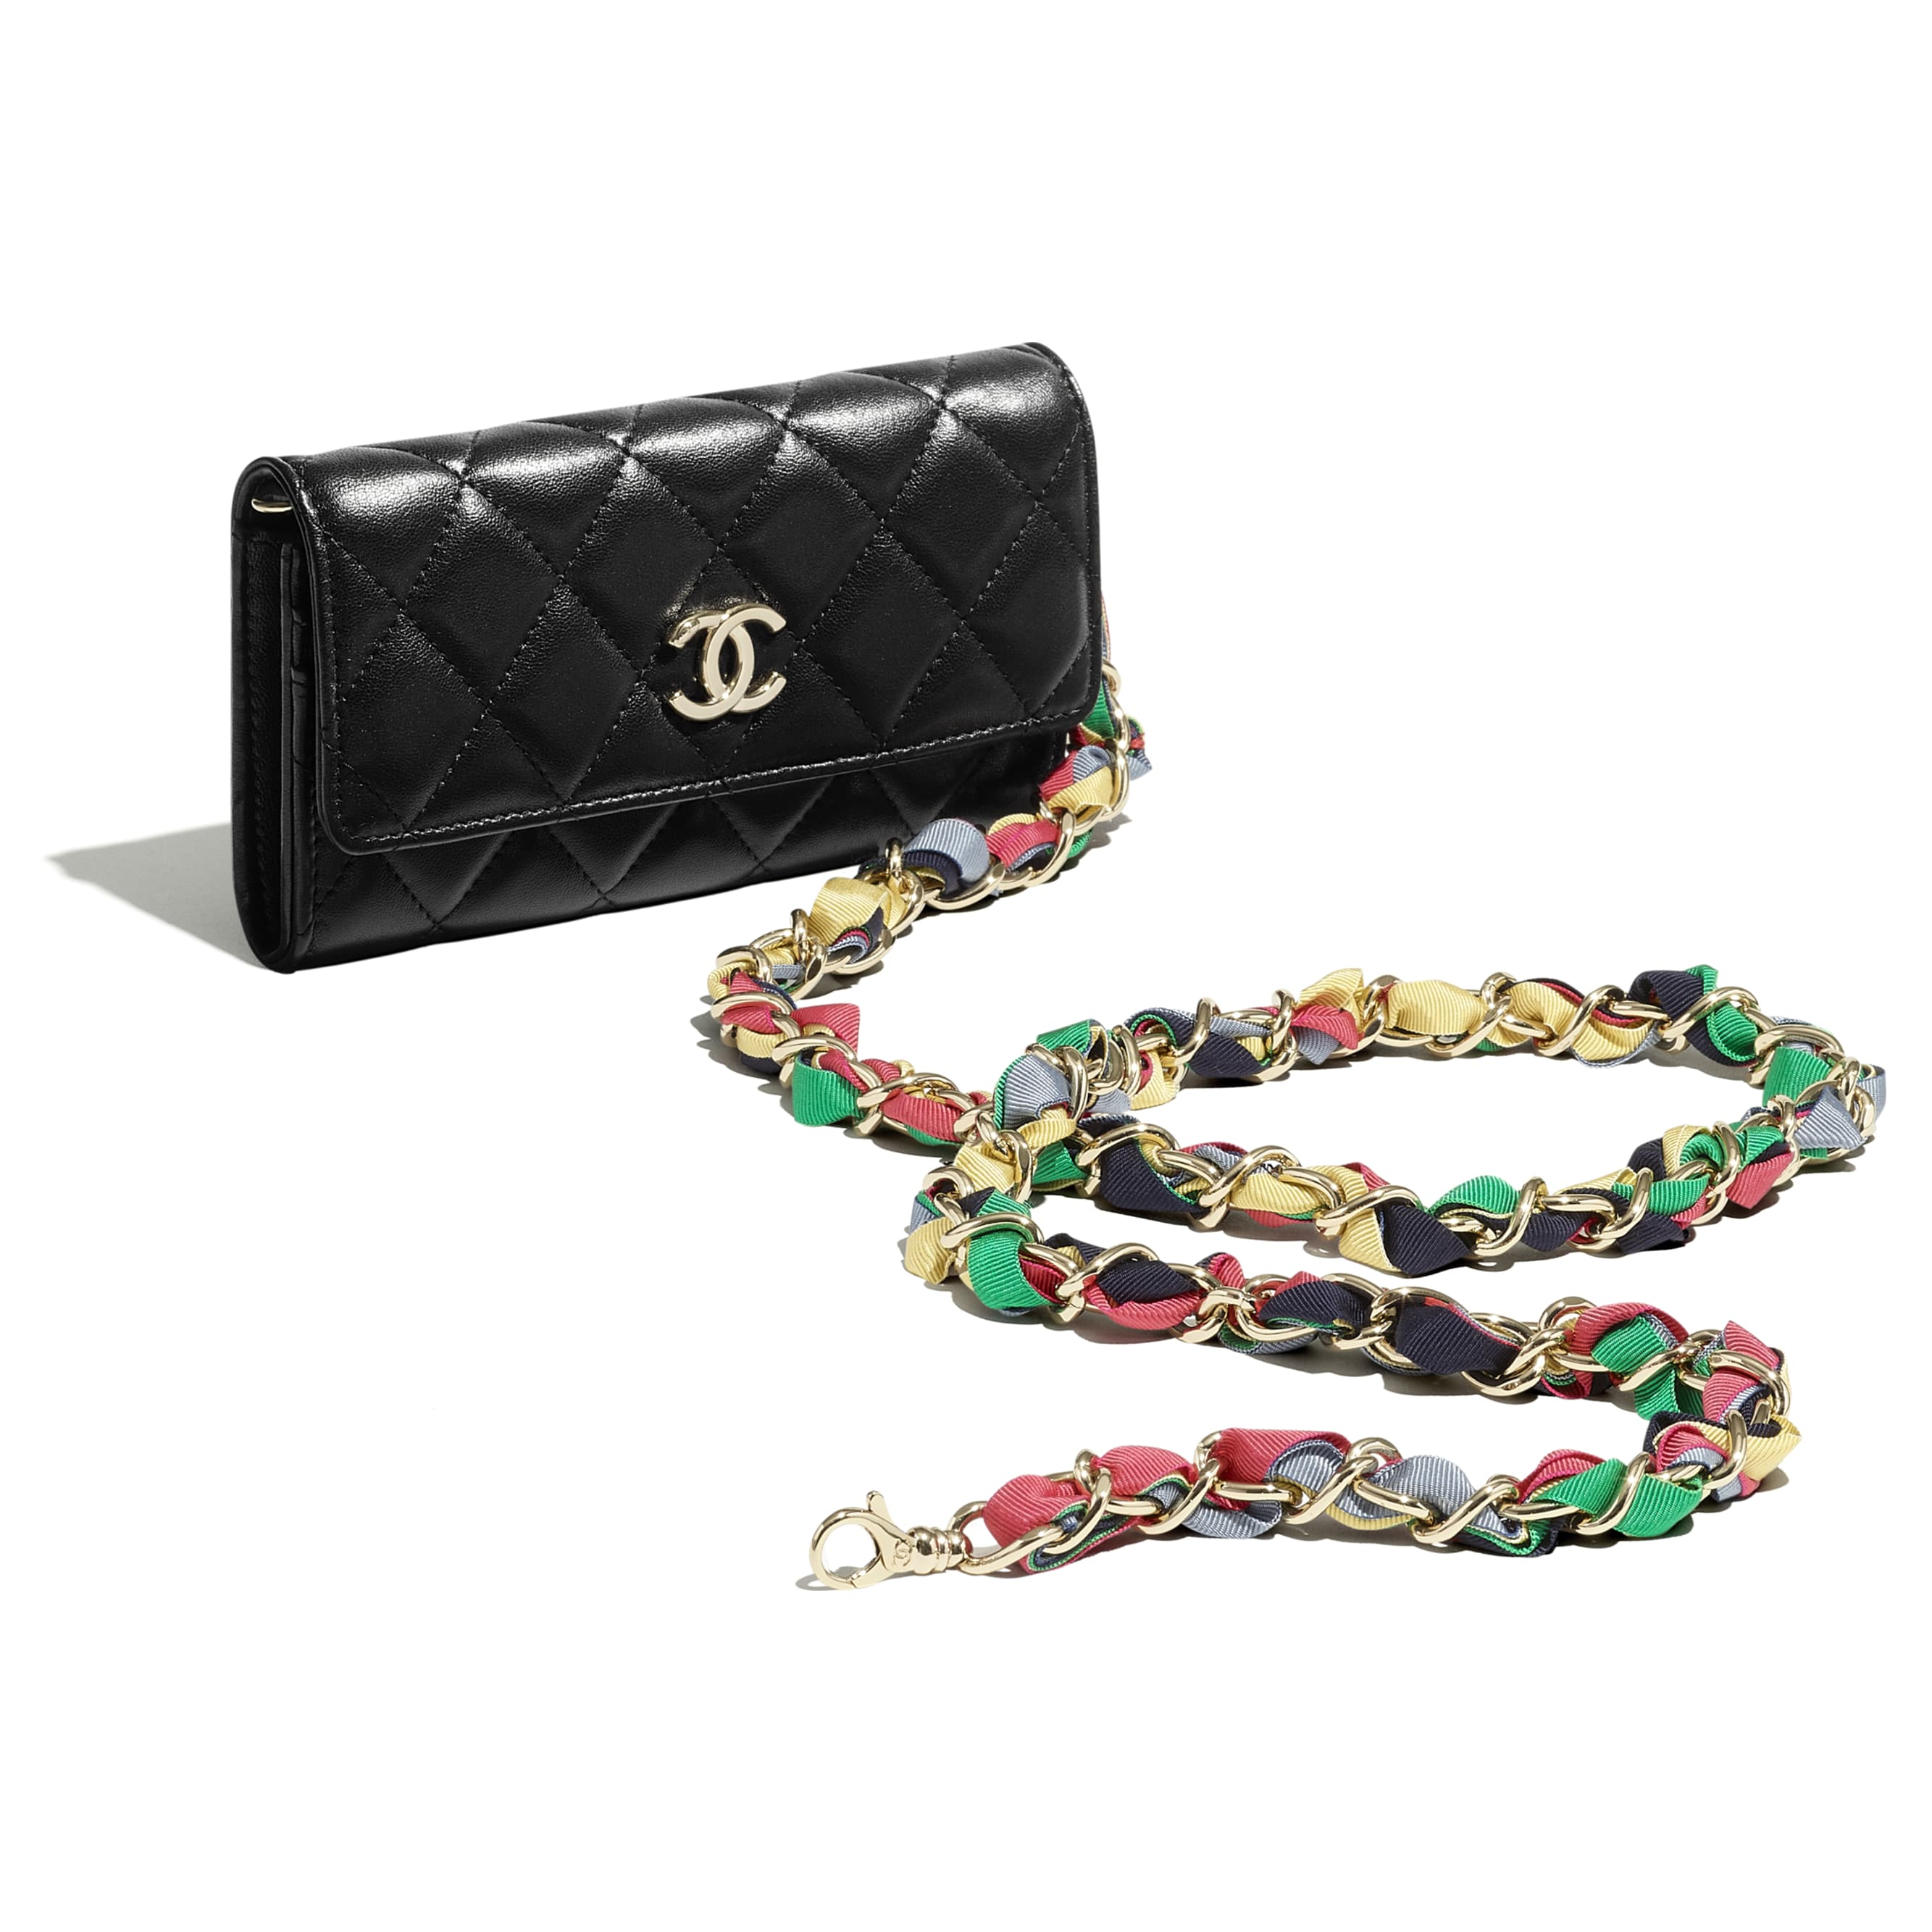 Clutch With Chain - Black - Shiny Lambskin, Ribbon & Gold-Tone Metal - CHANEL - Extra view - see standard sized version